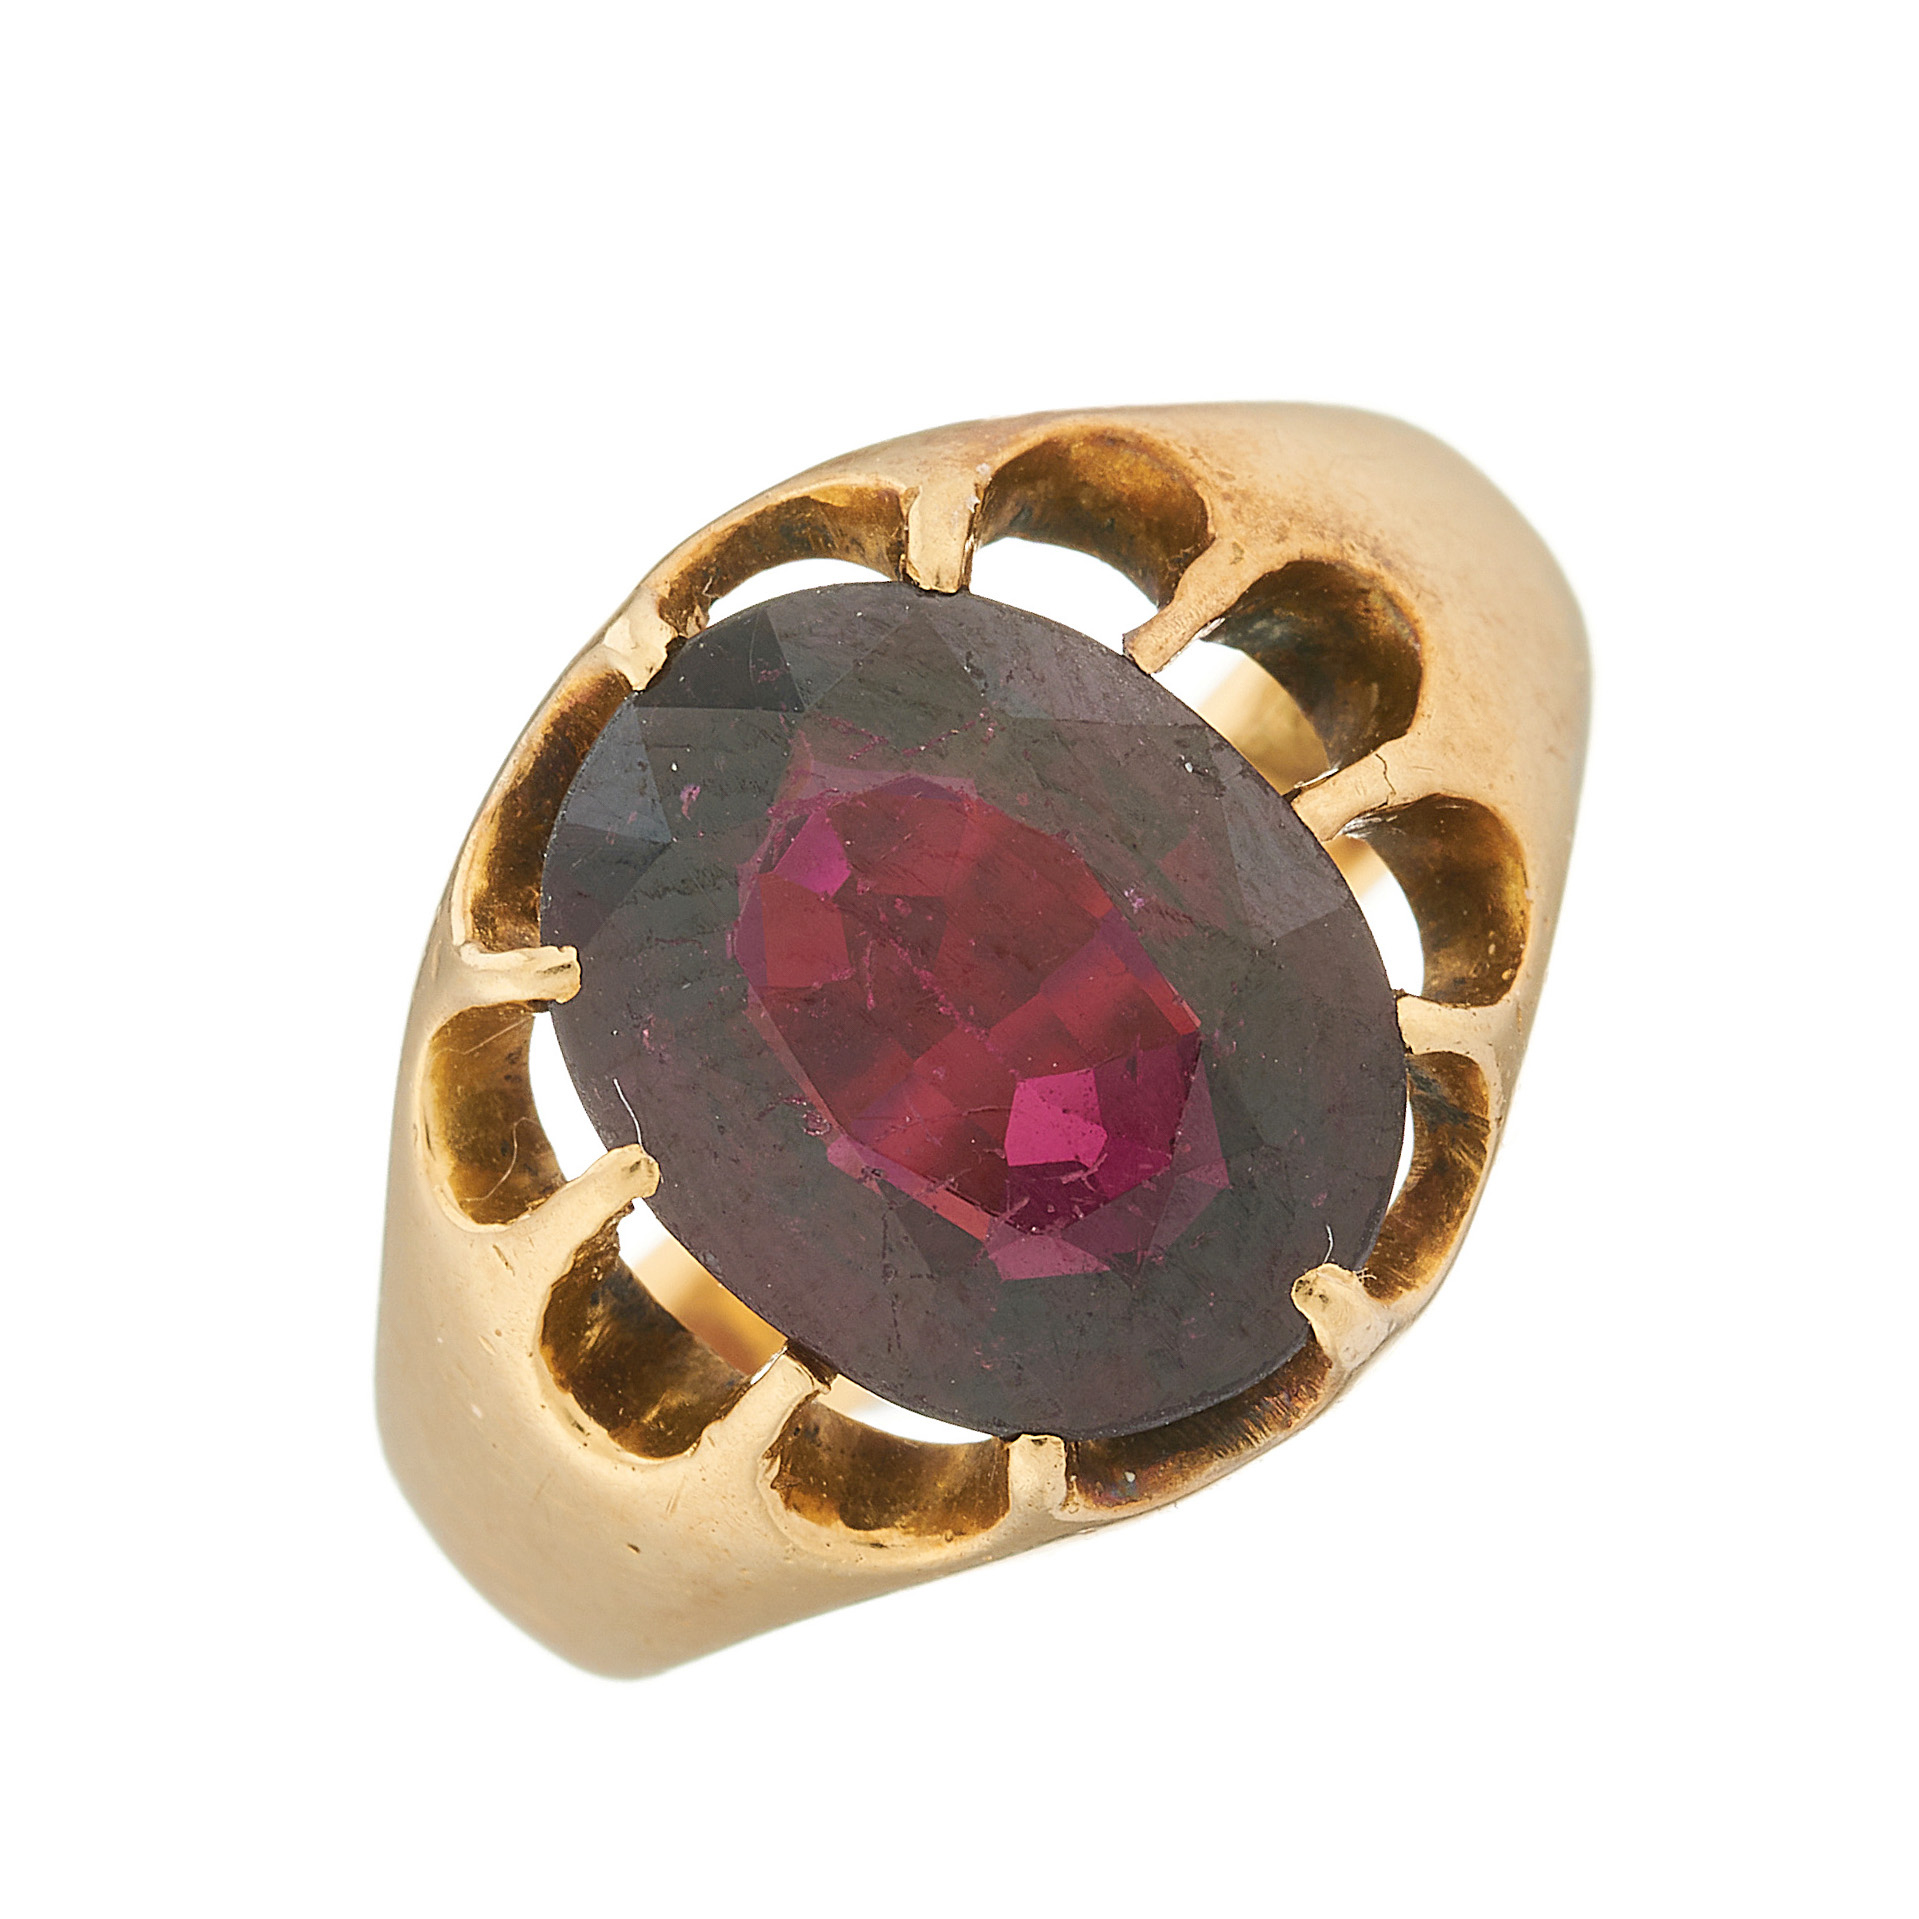 An early 20th century 18ct gold garnet single-stone ring